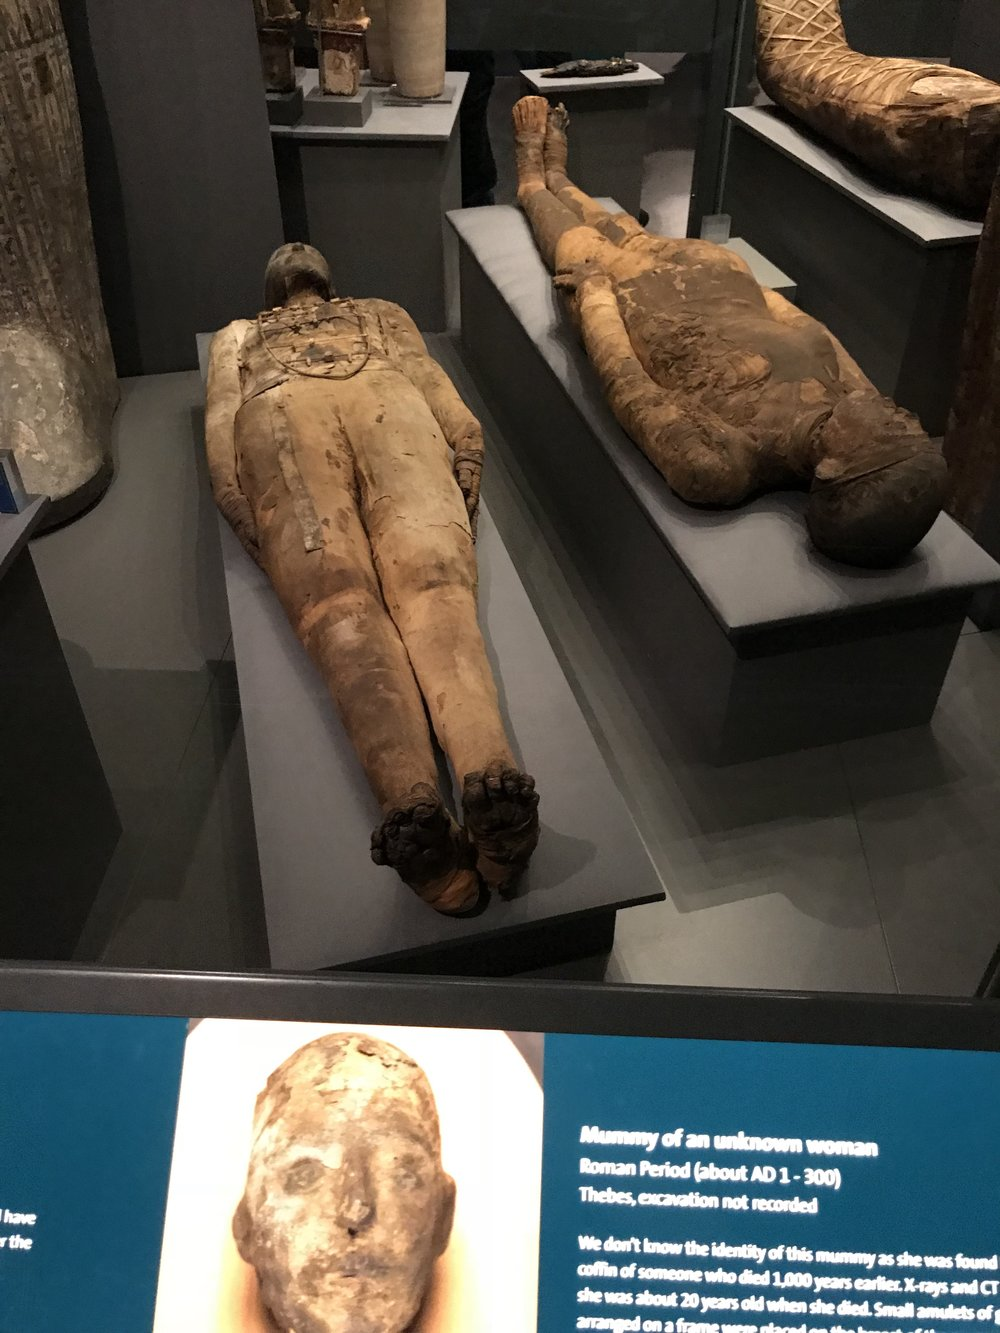 Mummy Exhibit